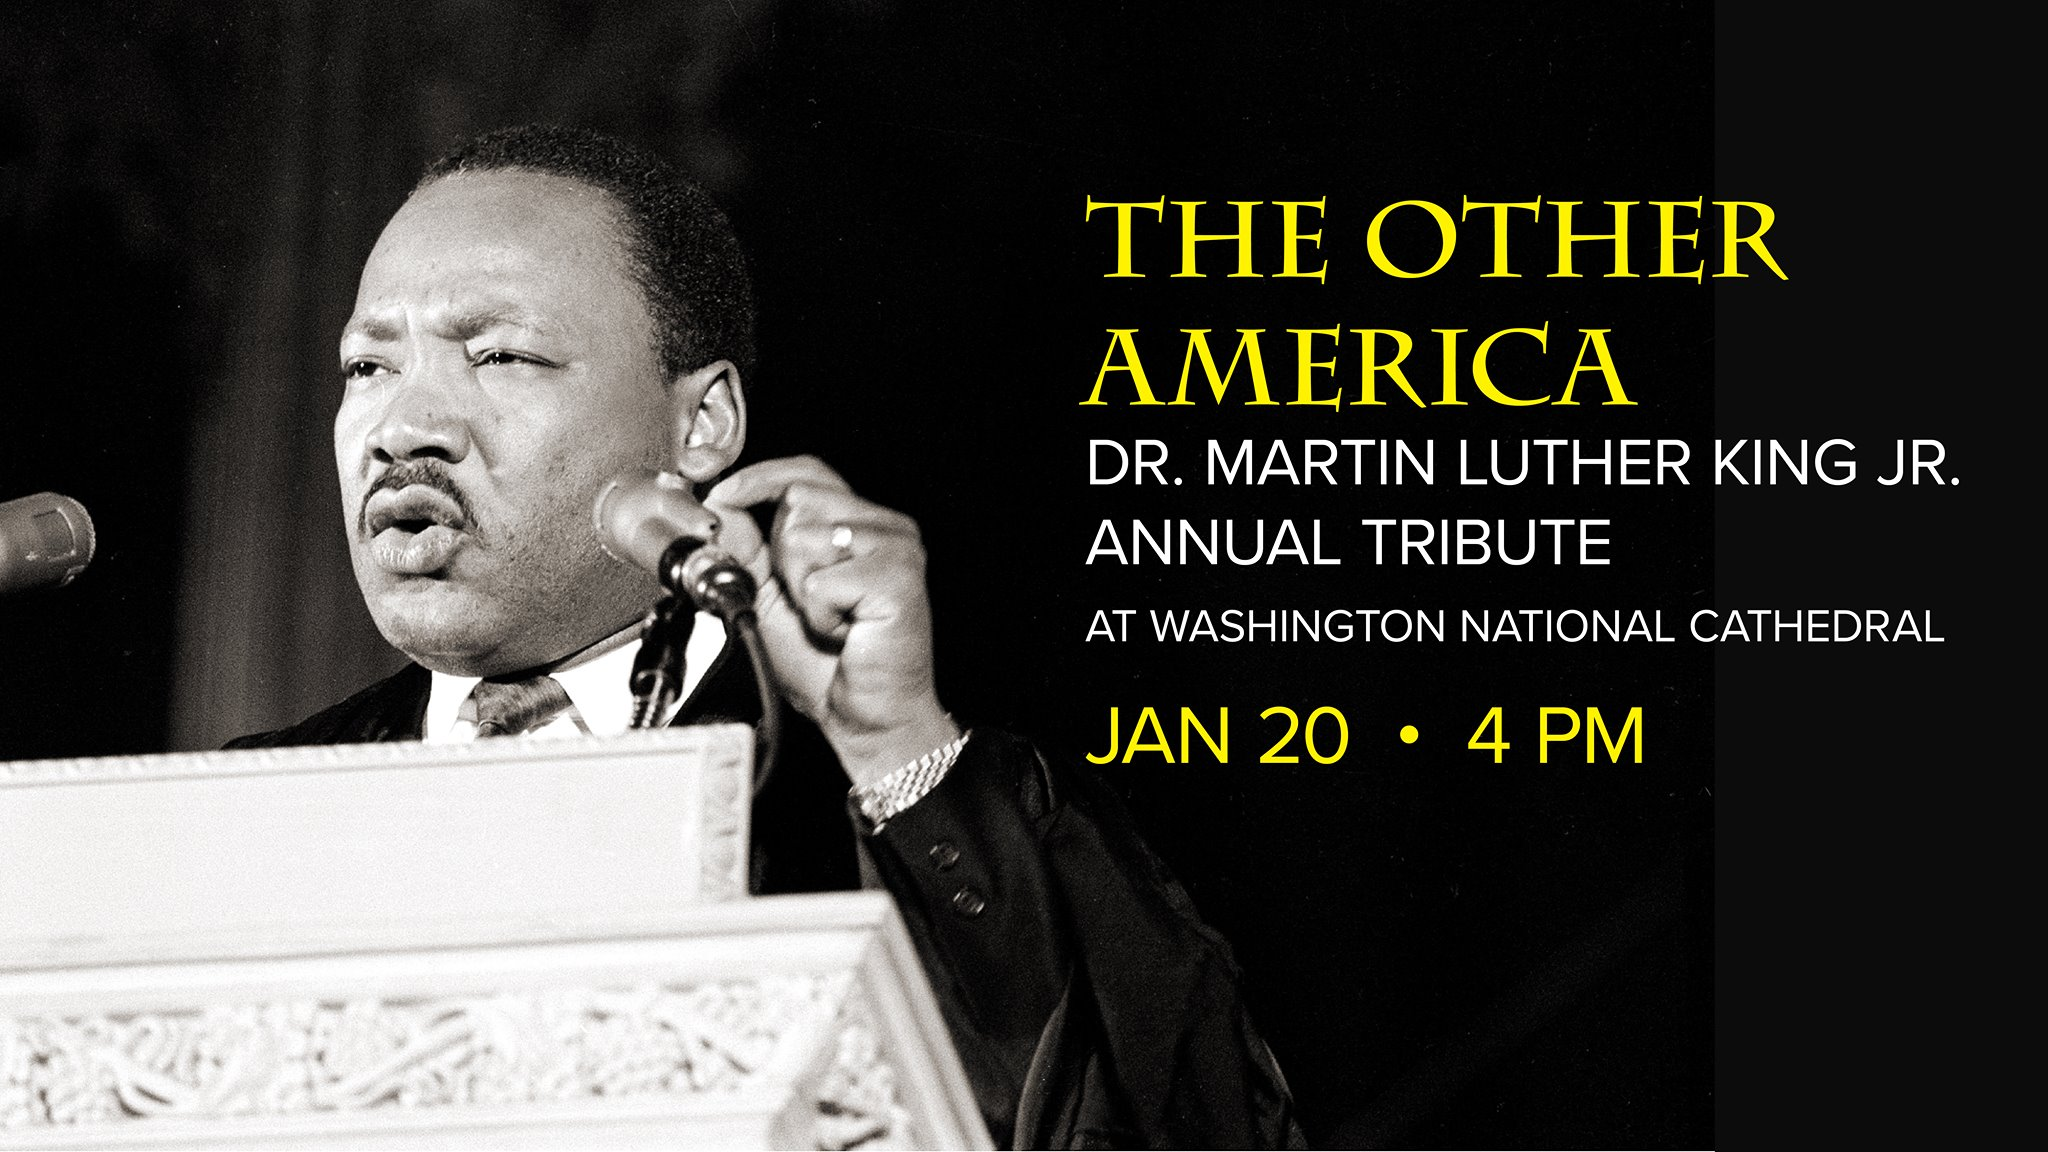 Martin Luther King Annual Tribute At The Washington National Cathedral